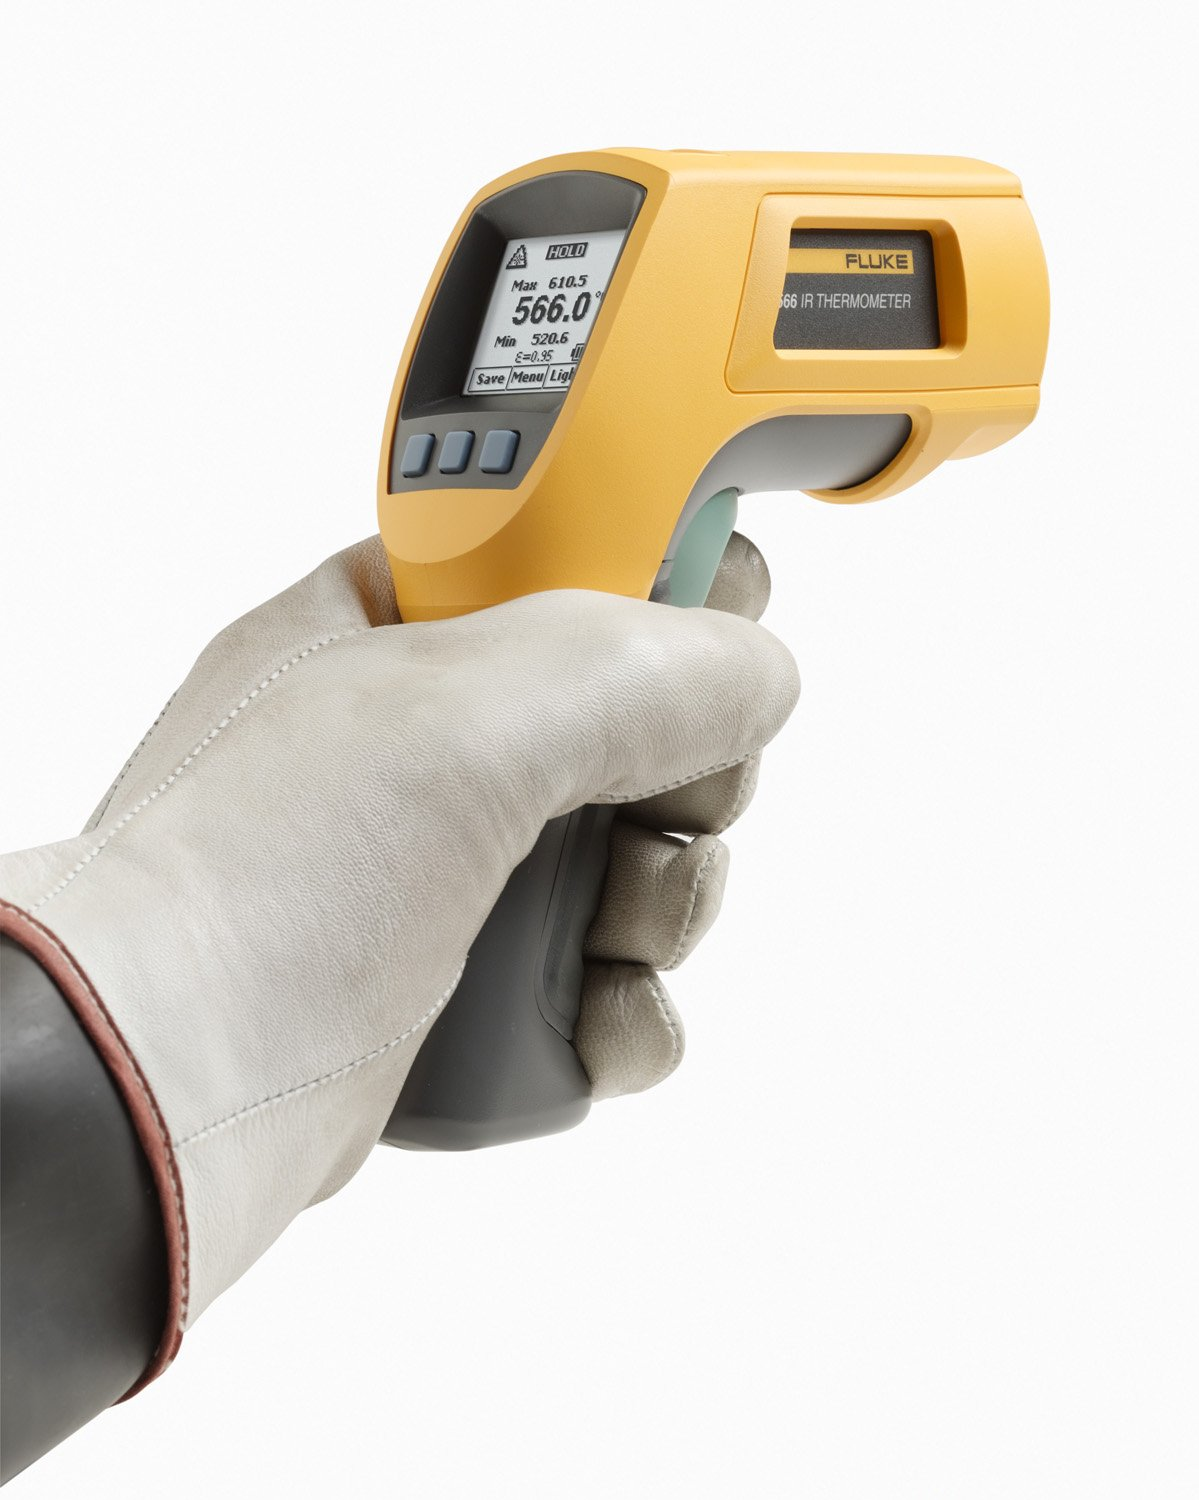 Fluke 566  Dual Infrared Thermometer, -40 to +1202 Degree F Range, Contact/Non Contact by Fluke (Image #3)